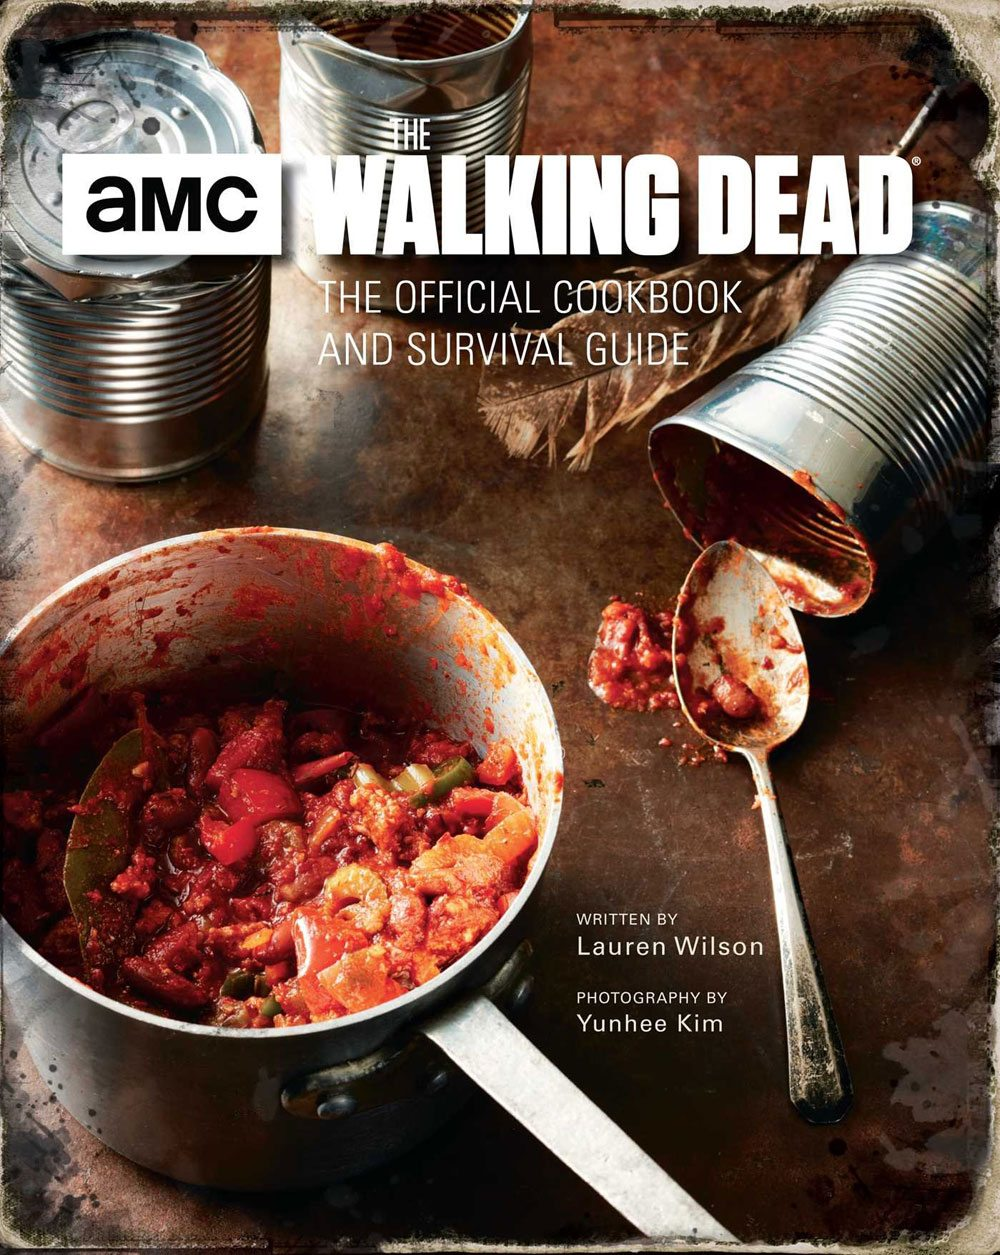 walkingdead cookbook - AMC and Insight Editions Releasing The Walking Dead: The Official Cookbook and Survival Guide in October